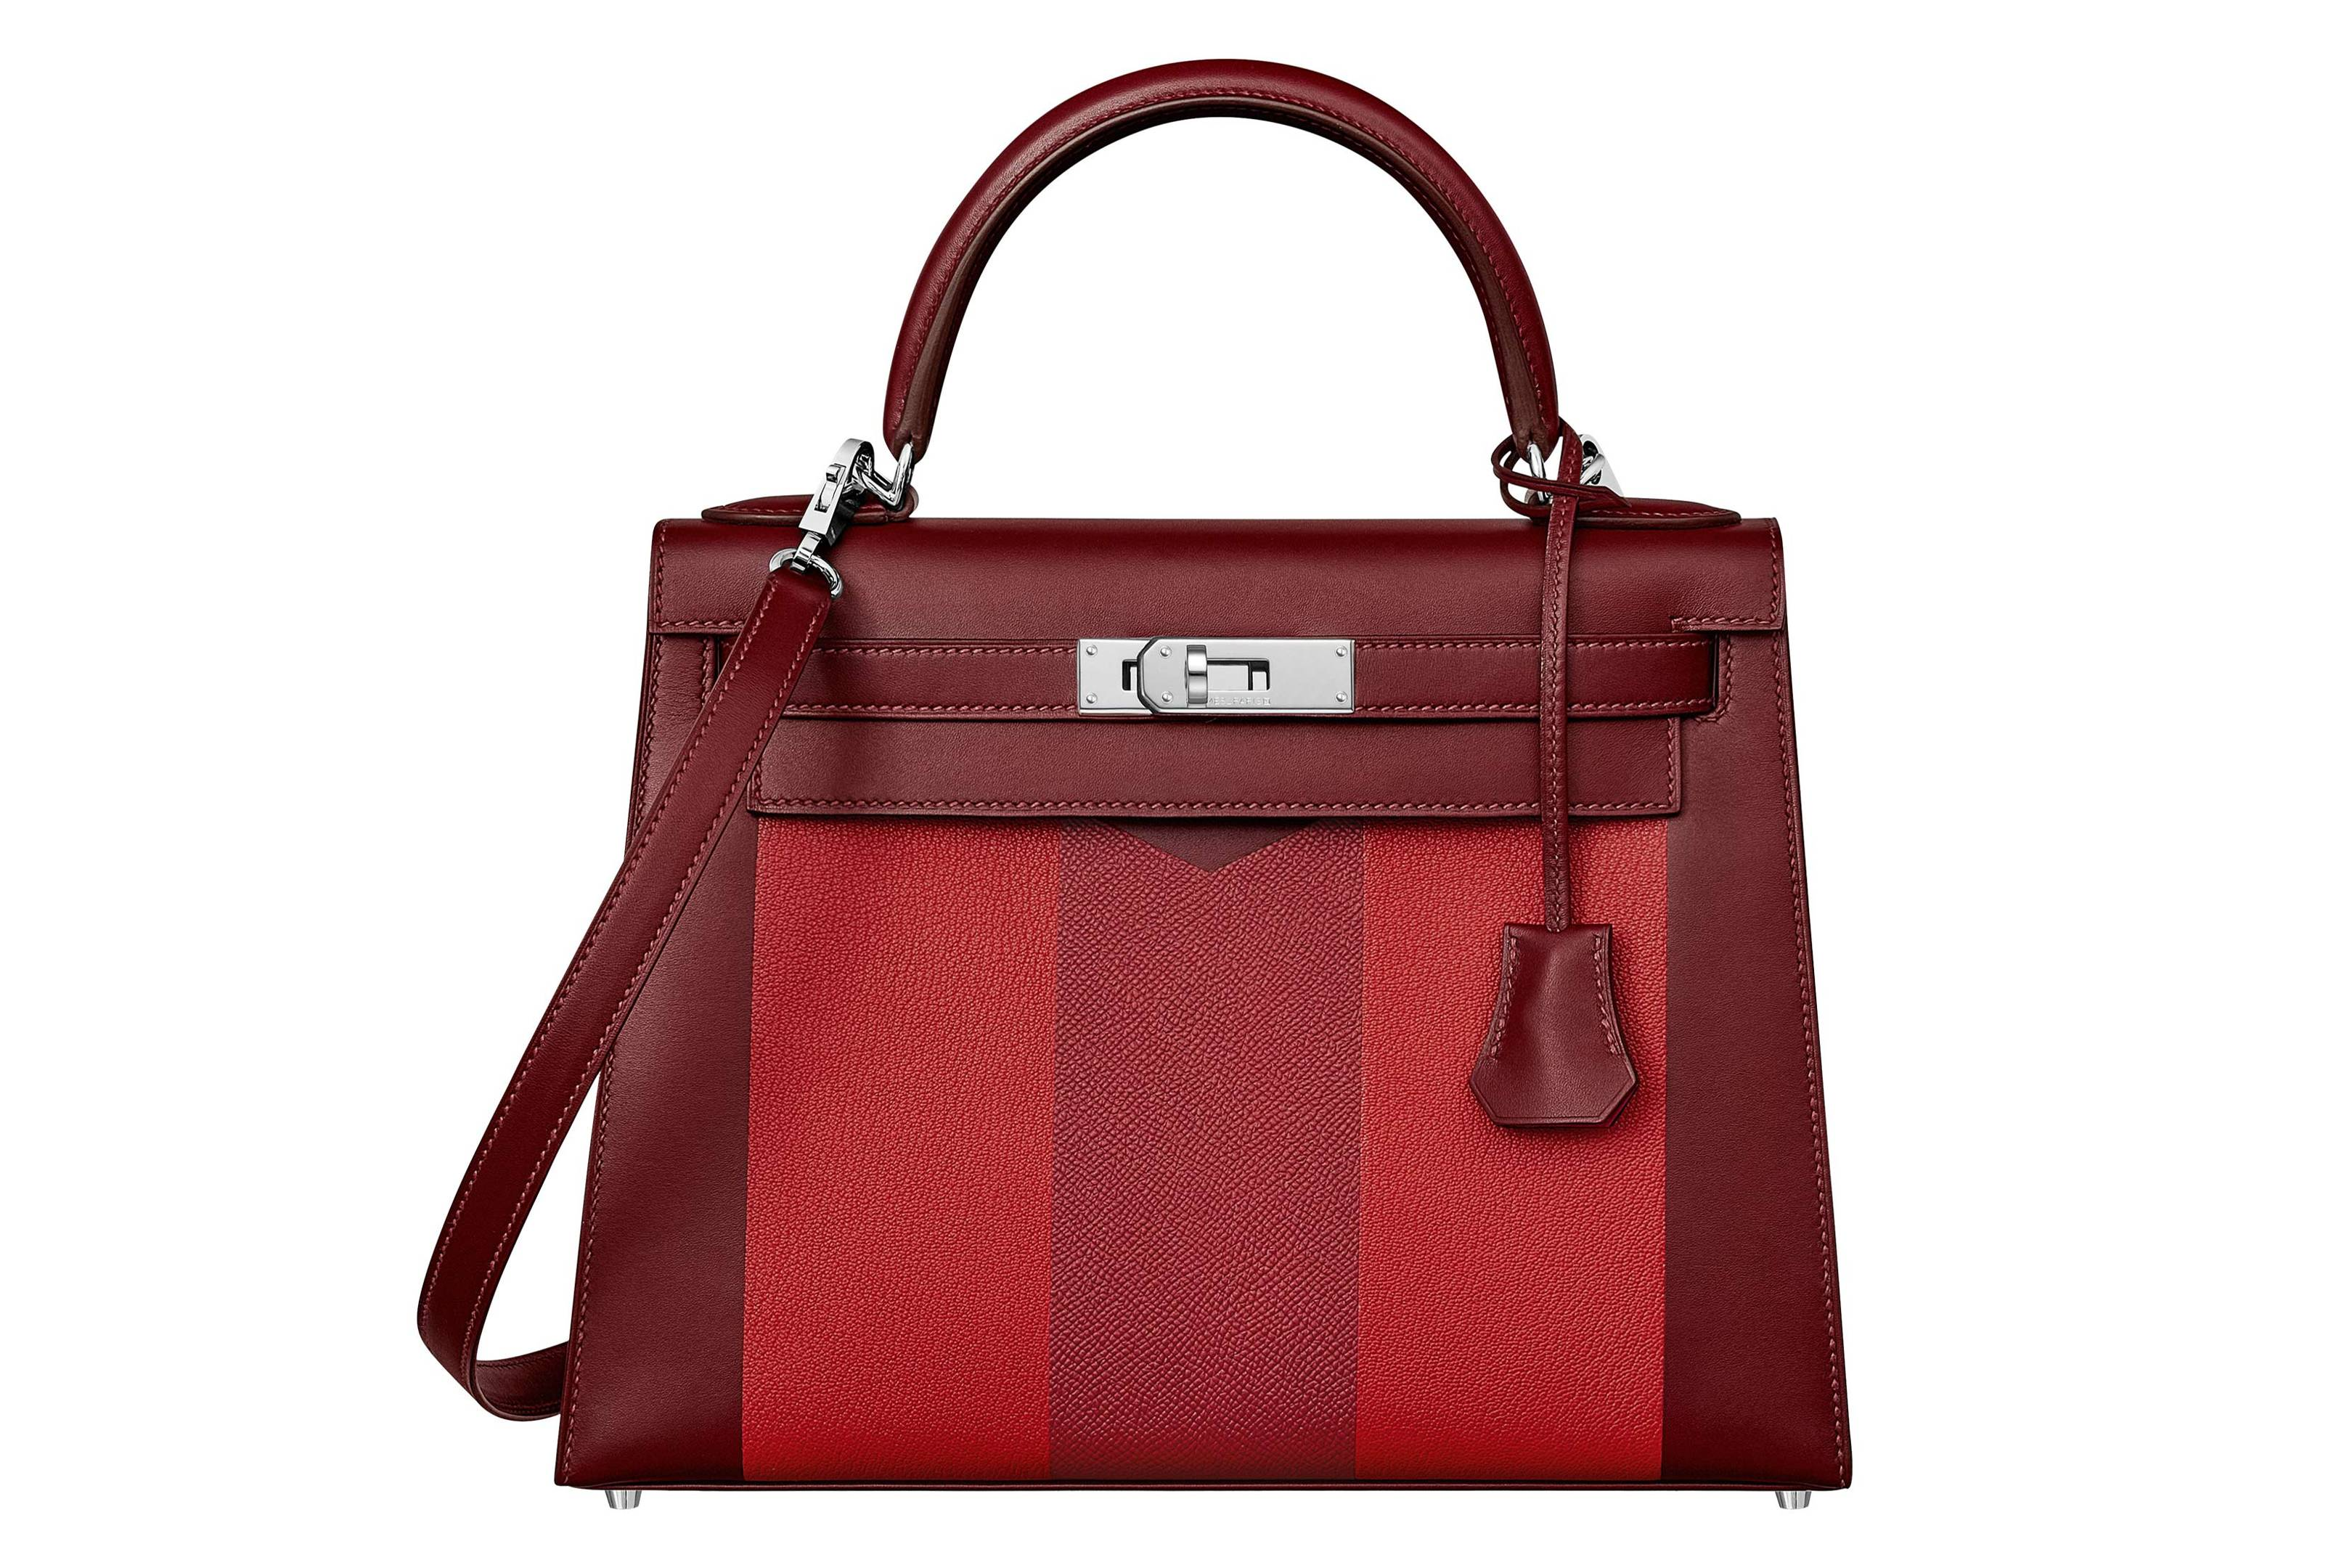 a531953df625 The Hermès Bag - The Most Famous Styles